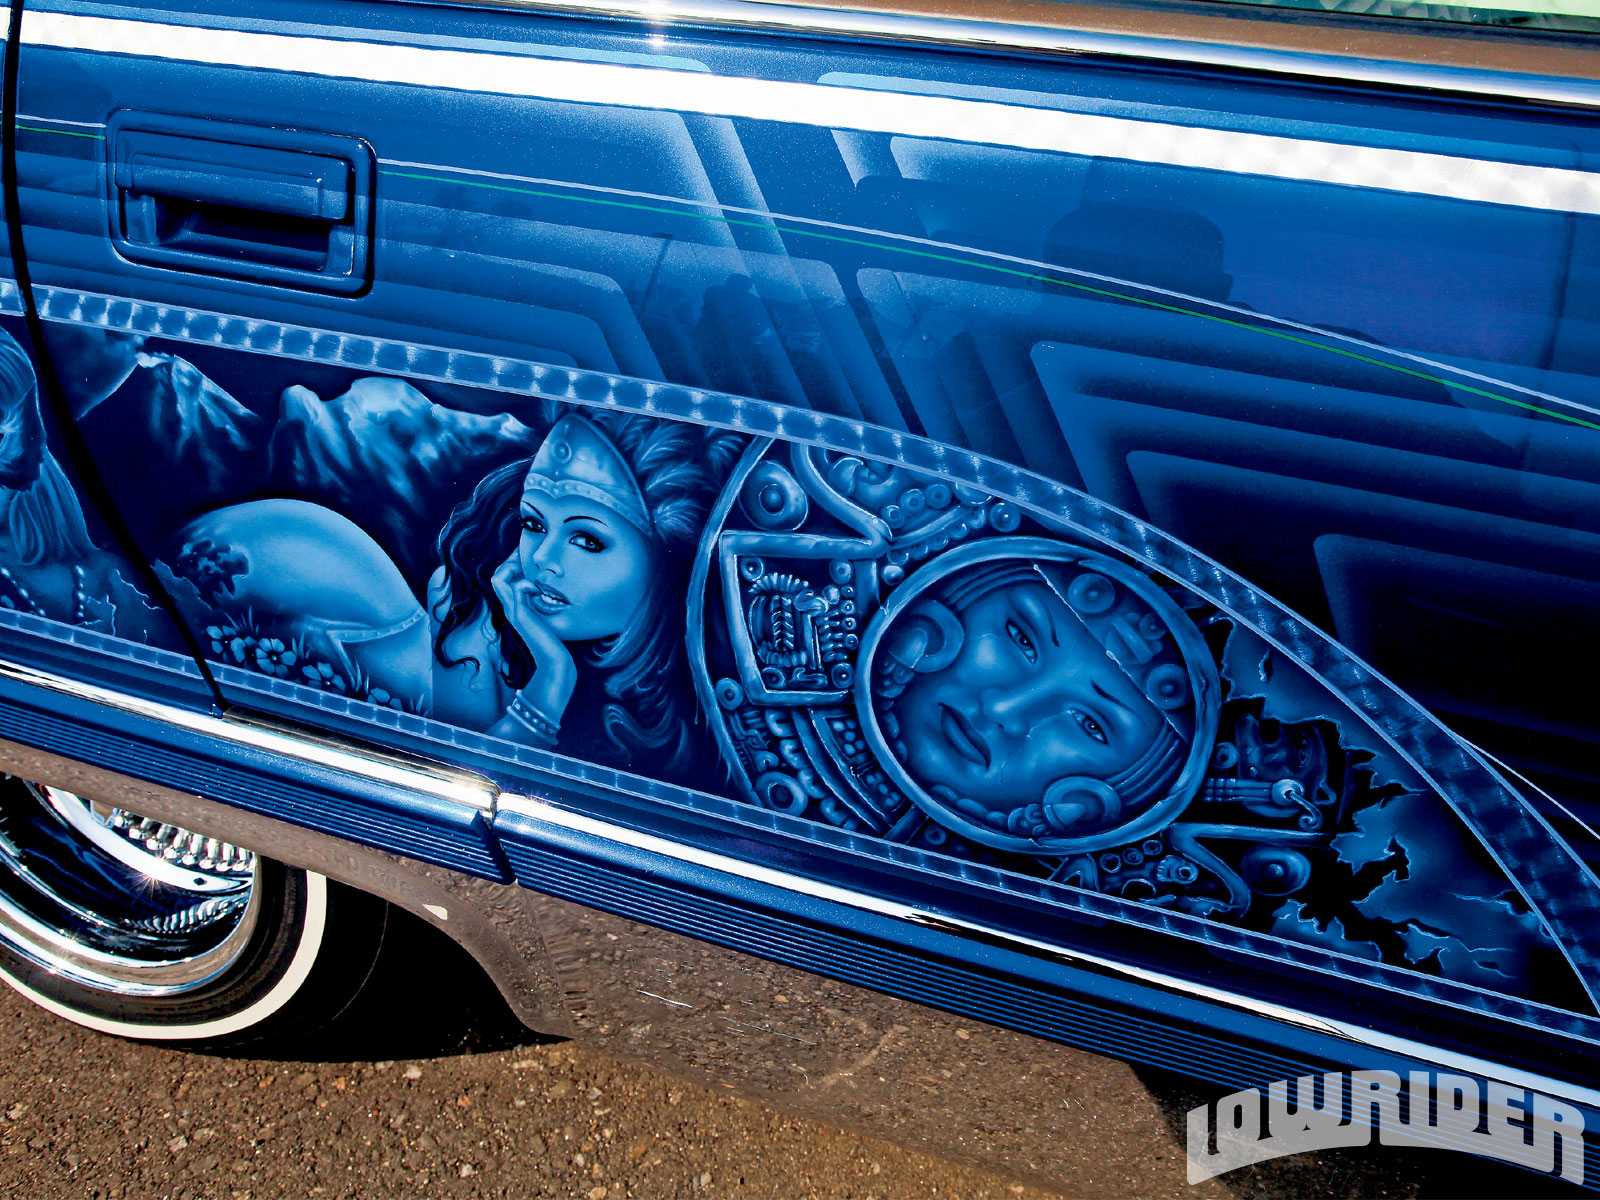 Lowrider Rims And Tires >> 1994 Cadillac Fleetwood - Lowrider Magazine